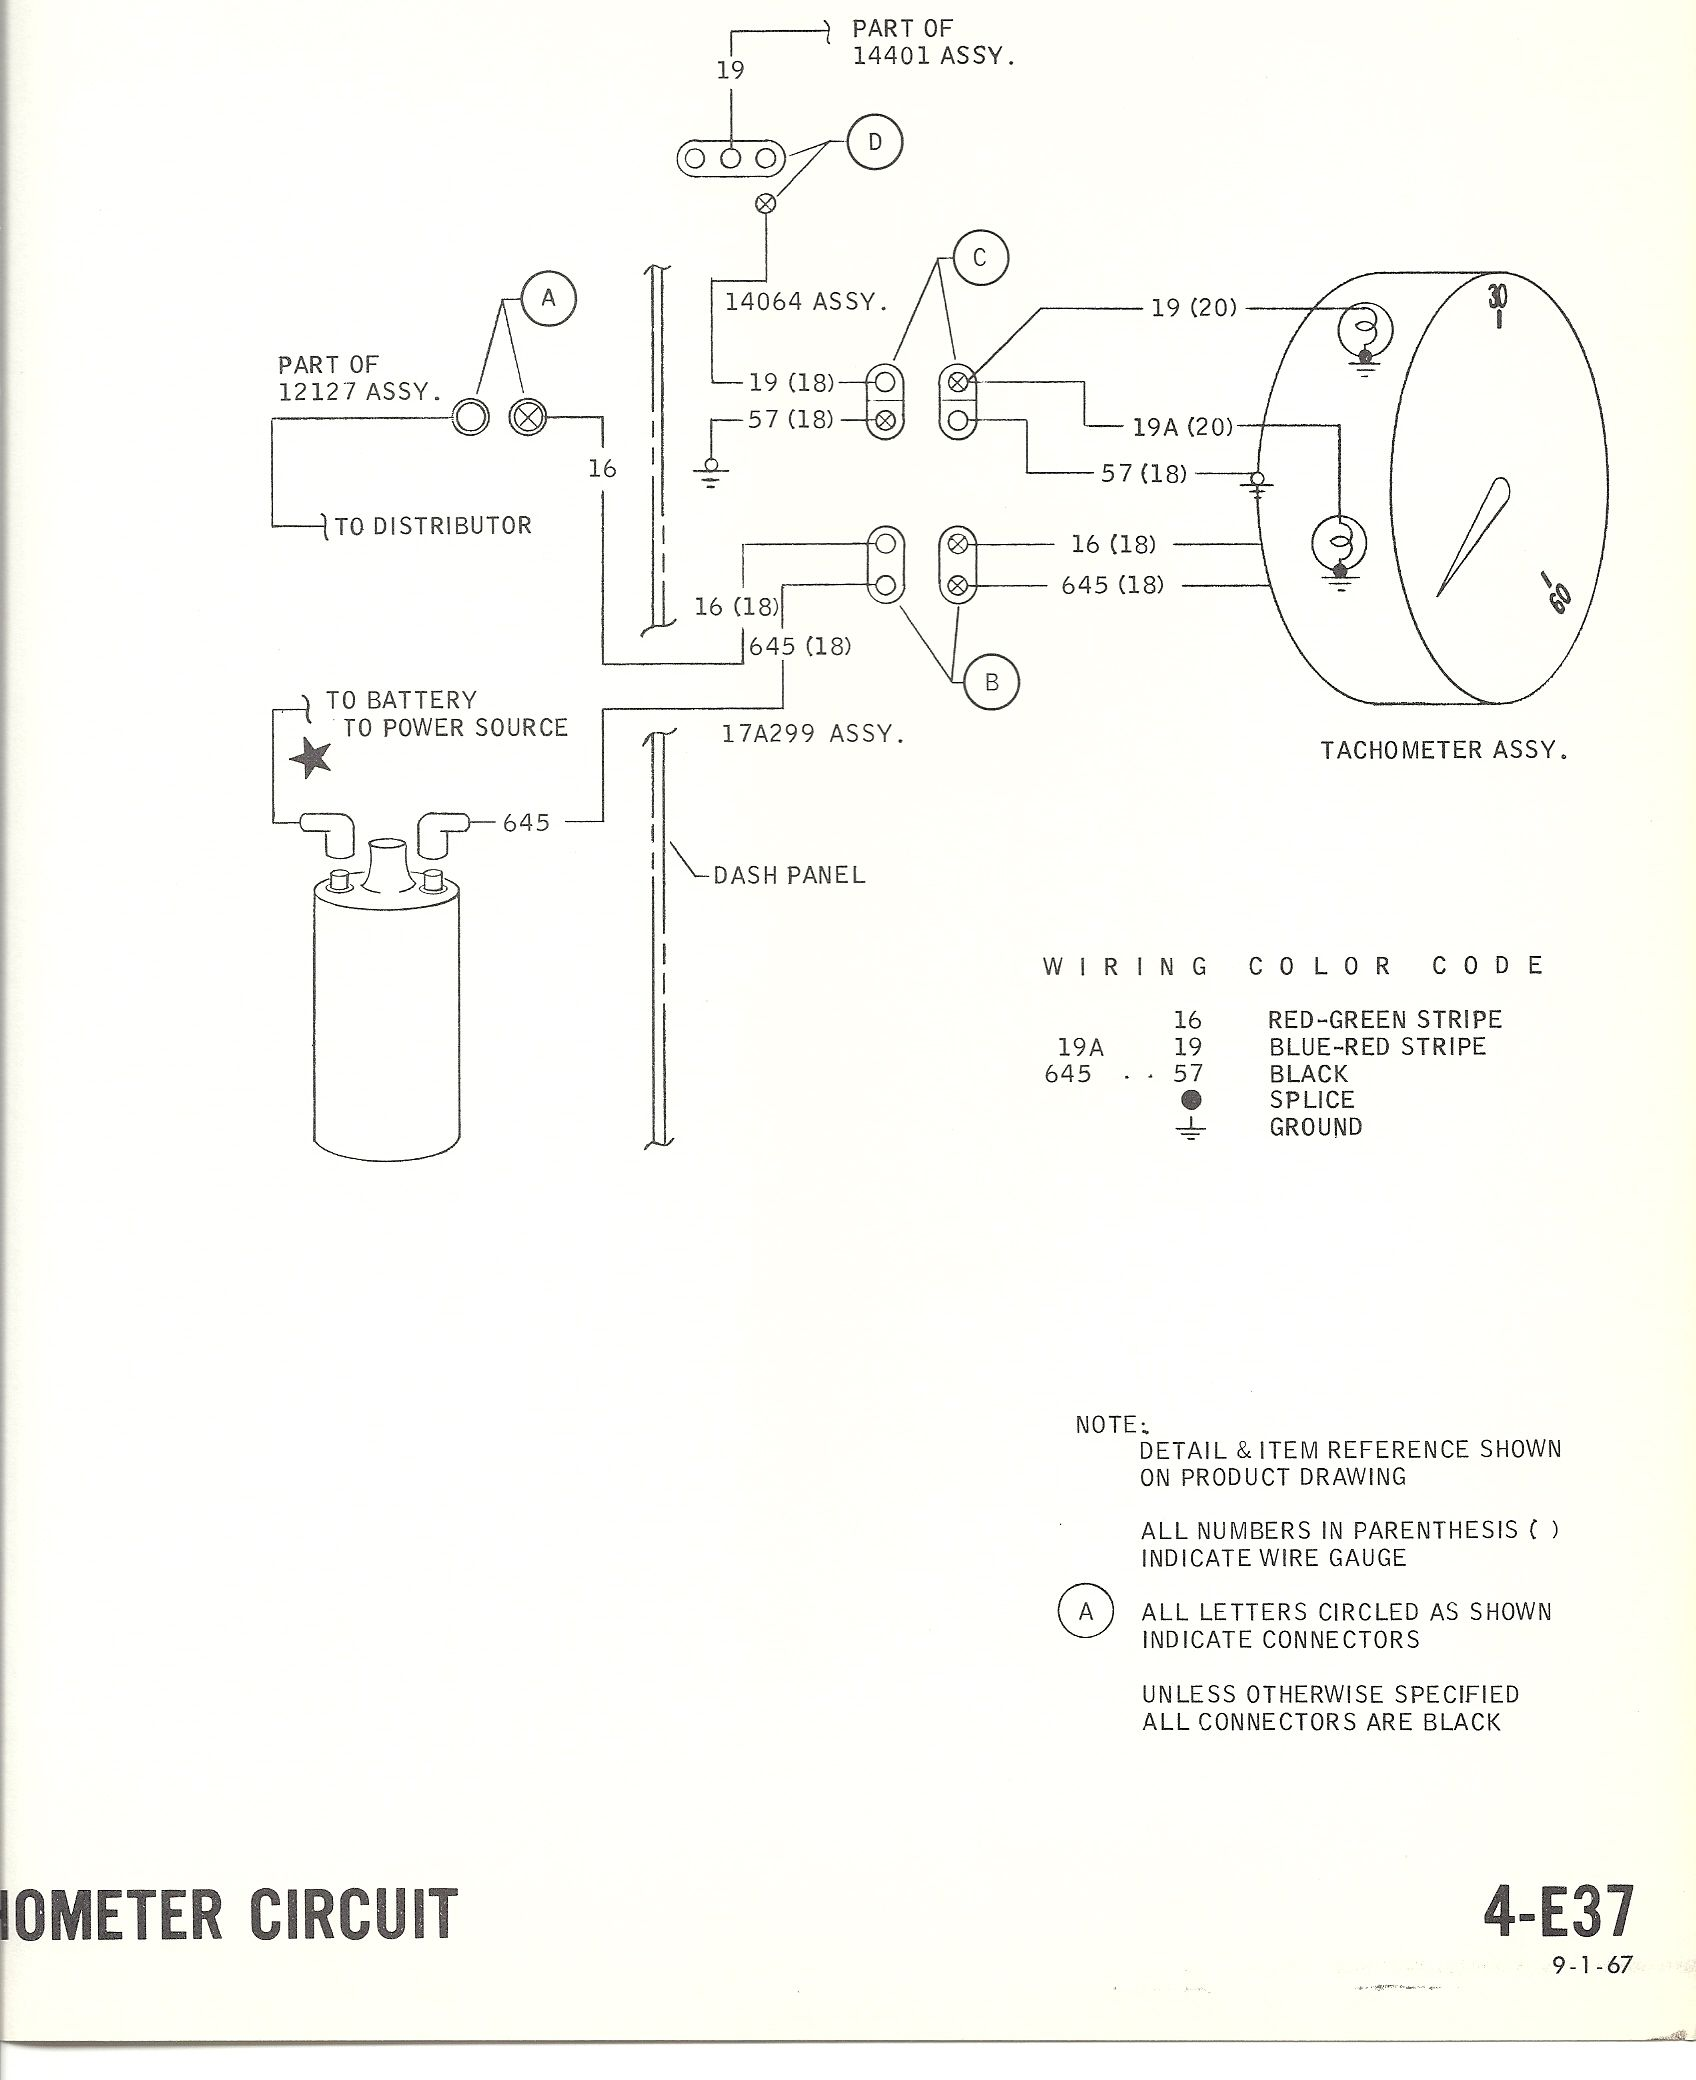 2b2f8e488a4c6a6b870c00f5af30de6c 1967 mustang wiring to tachometer mustang tachometer Ford Alternator Wiring Diagram at cos-gaming.co